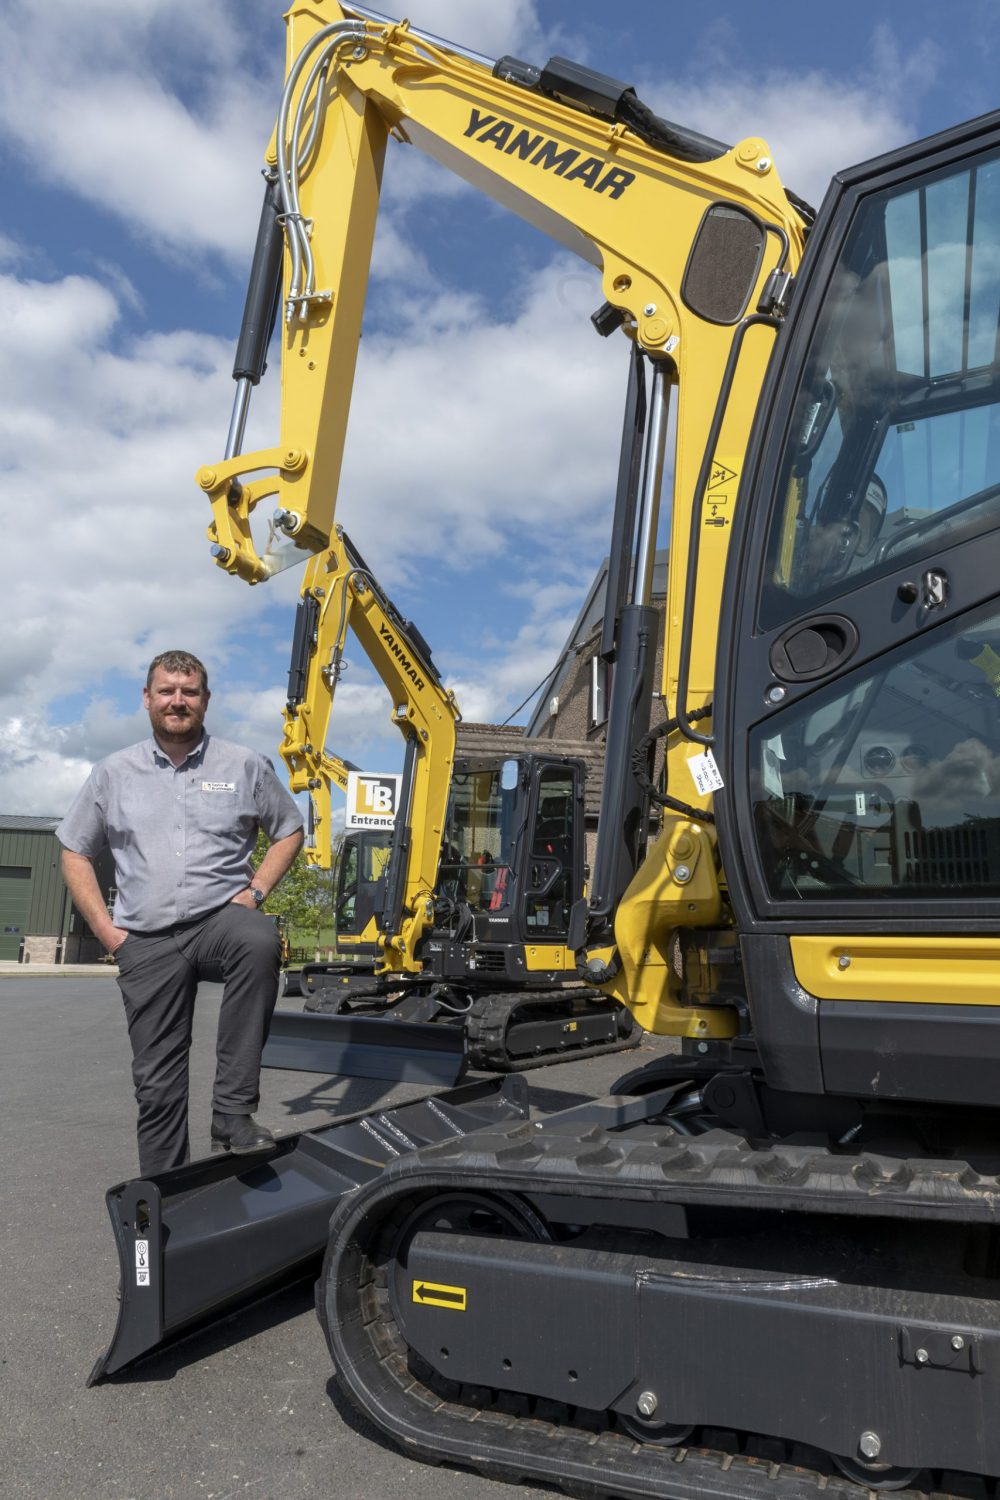 Yanmar expands in UK with new dealer Taylor and Braithwaite. Image by Jonathan Becker